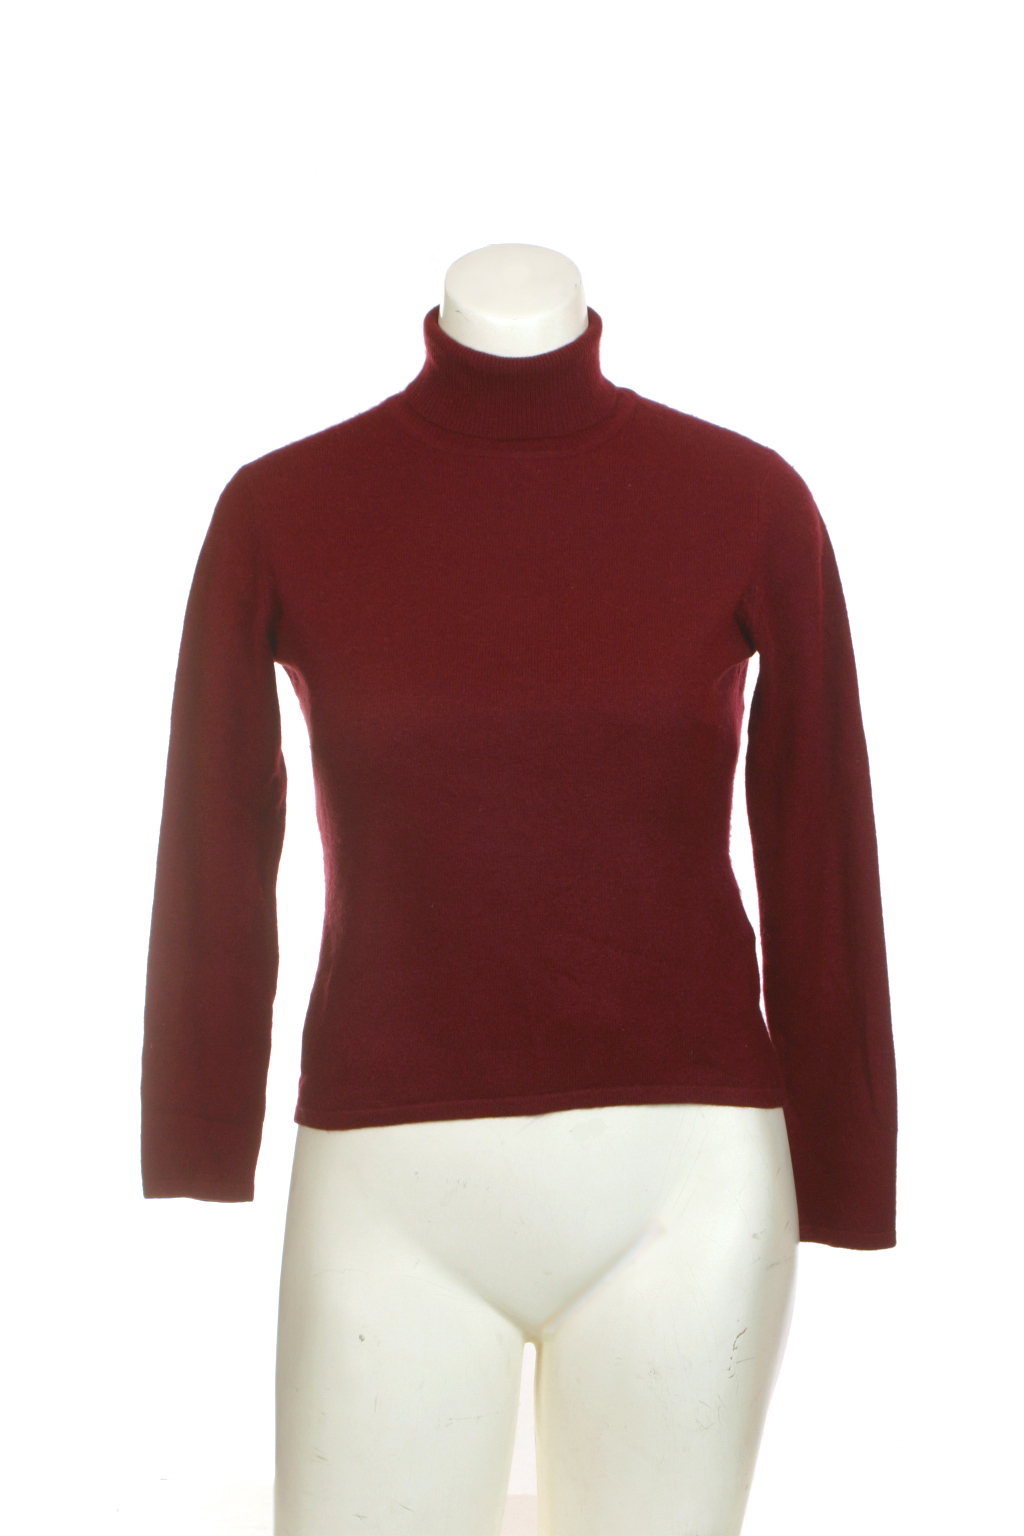 Thrift Shop Sweater Second Hand JaxSport Cashmere Petite S Burgundy Turtleneck